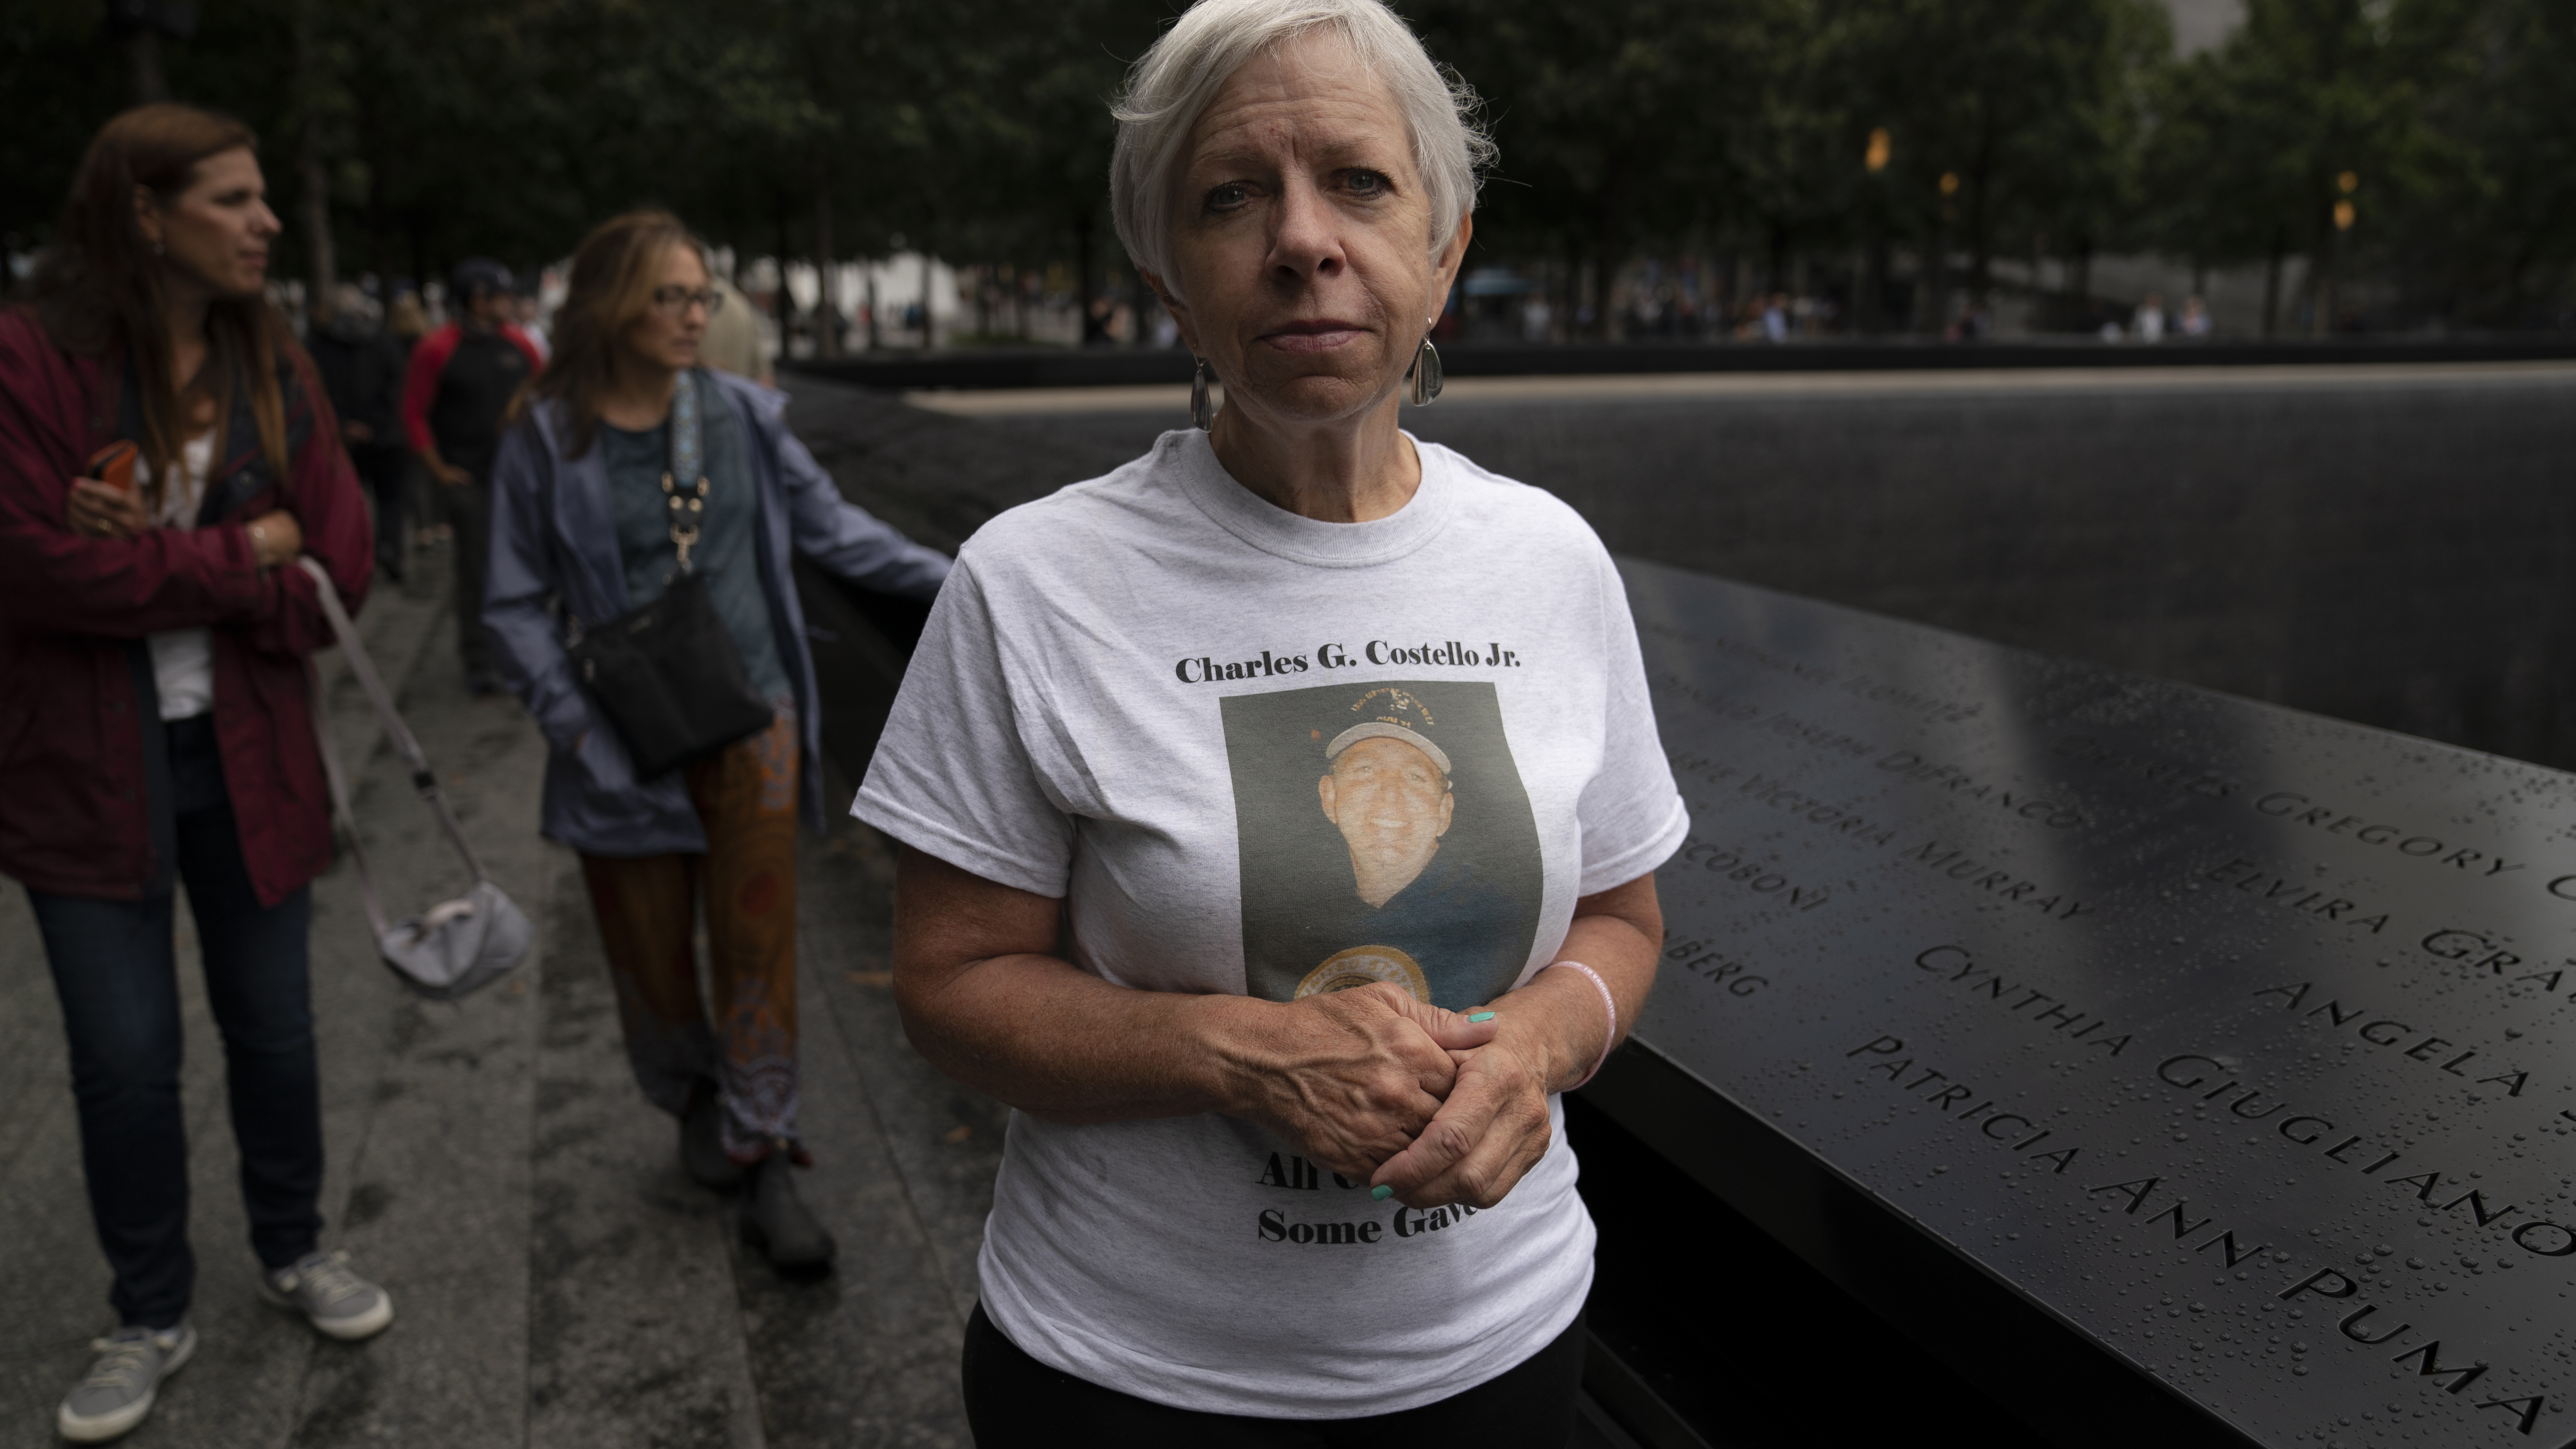 """Kathy Birch, sister of Charles Gregory """"Chuck"""" Costello Jr., an elevator electrician who ran into Tower 1 of the World Trade Center before the towers fell, stands beside her brothers name while visitors browse the north pool at the National September 11 Memorial & Museum in New York."""